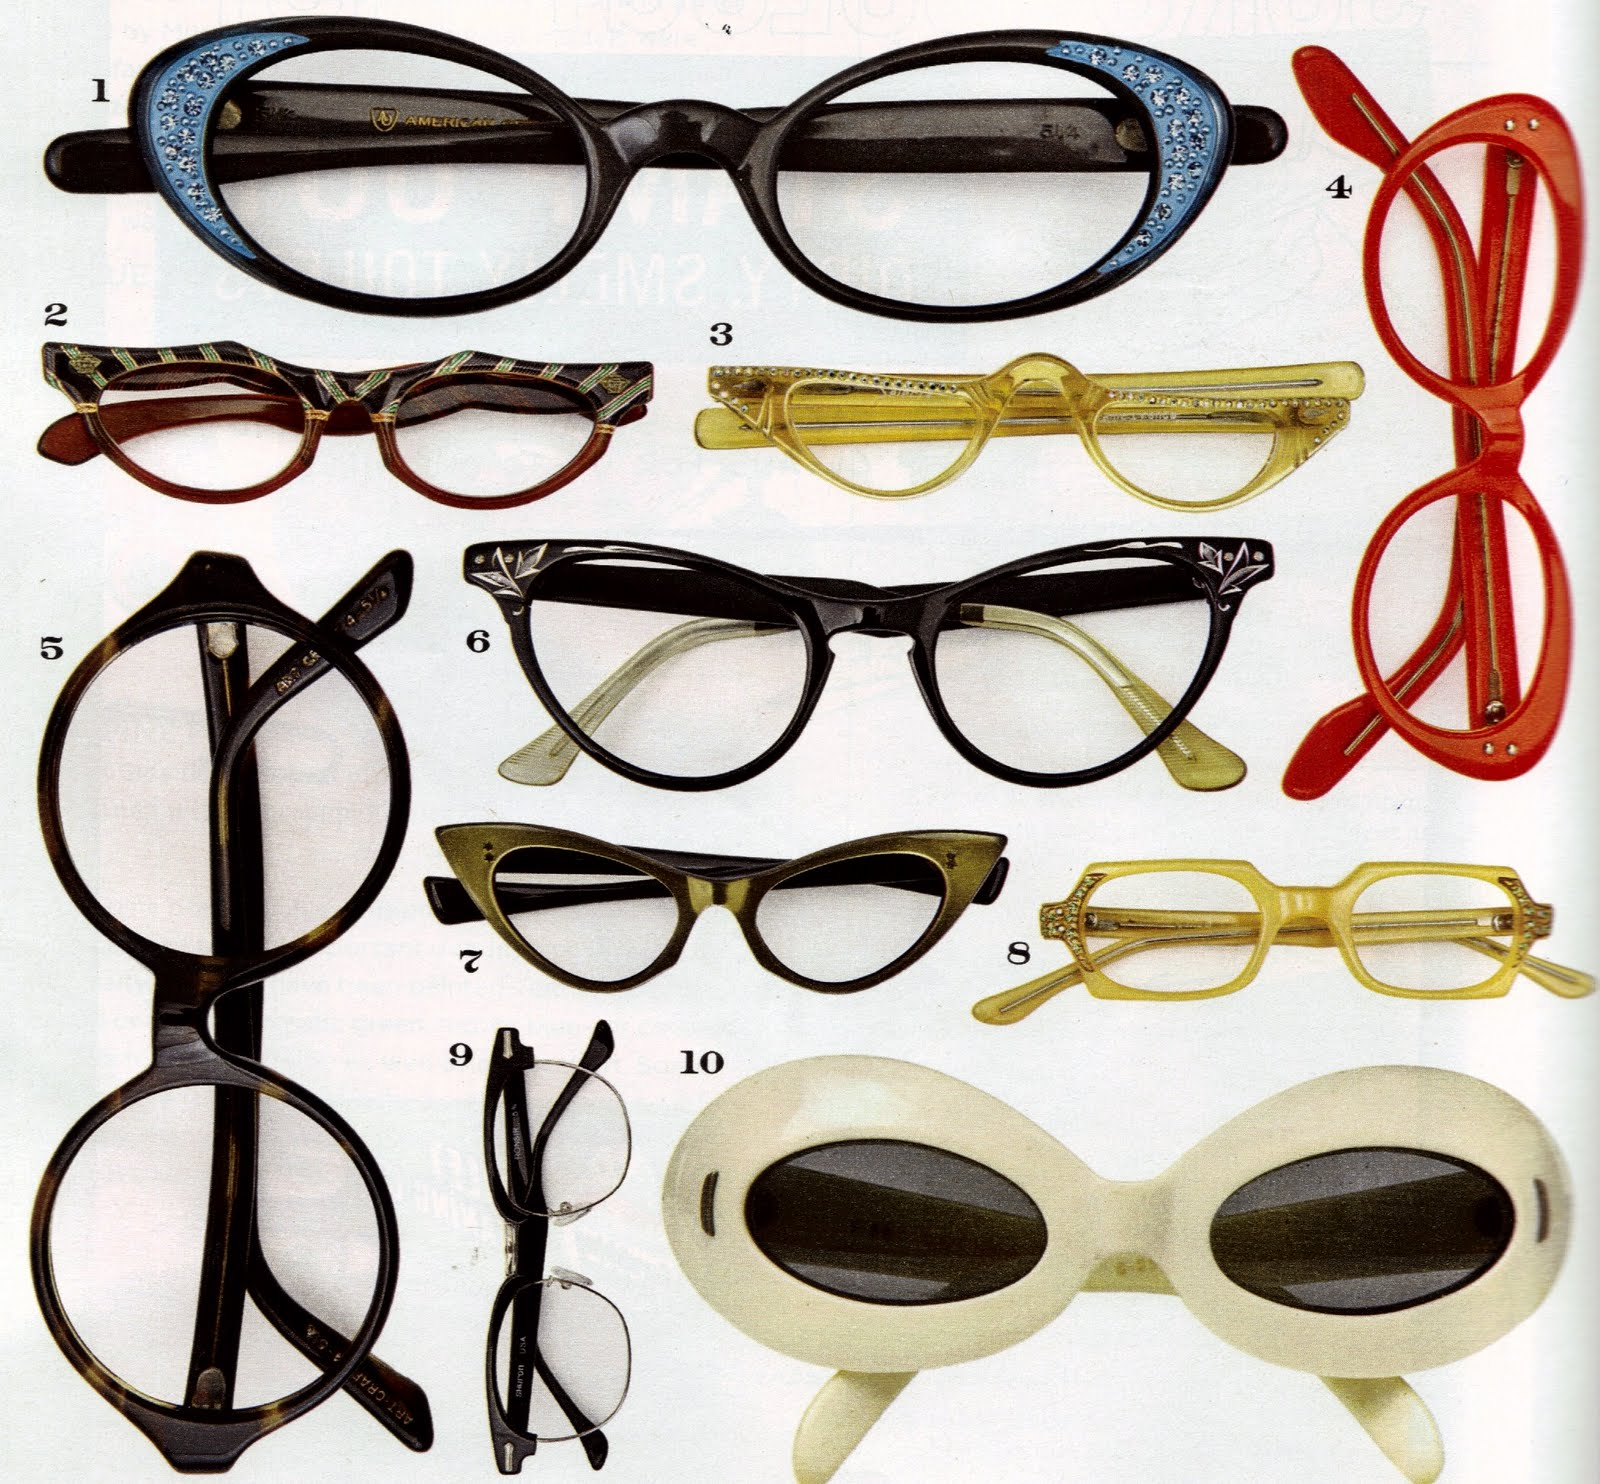 DOCTOR EYE GLASSES Glass Eyes Online